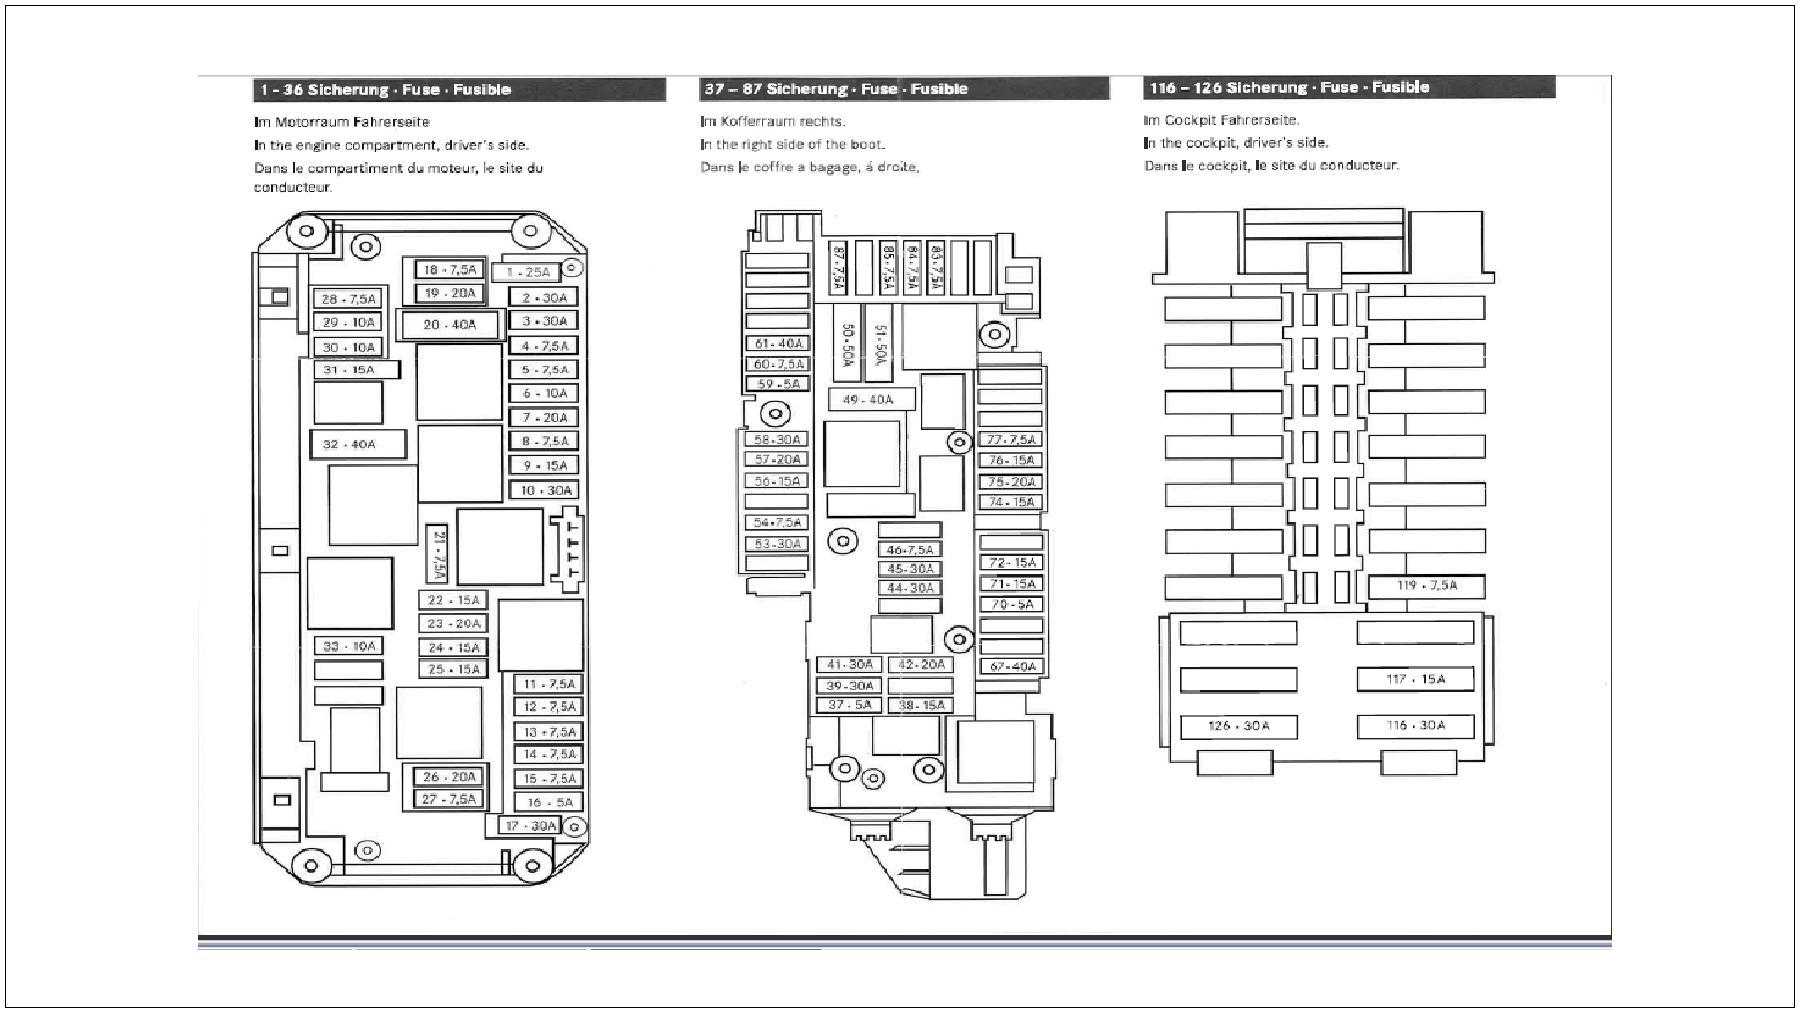 hight resolution of mercedes fuse box 2004 wiring diagram page 2004 mercedes c230 kompressor fuse box diagram 2004 mercedes c230 fuse diagram